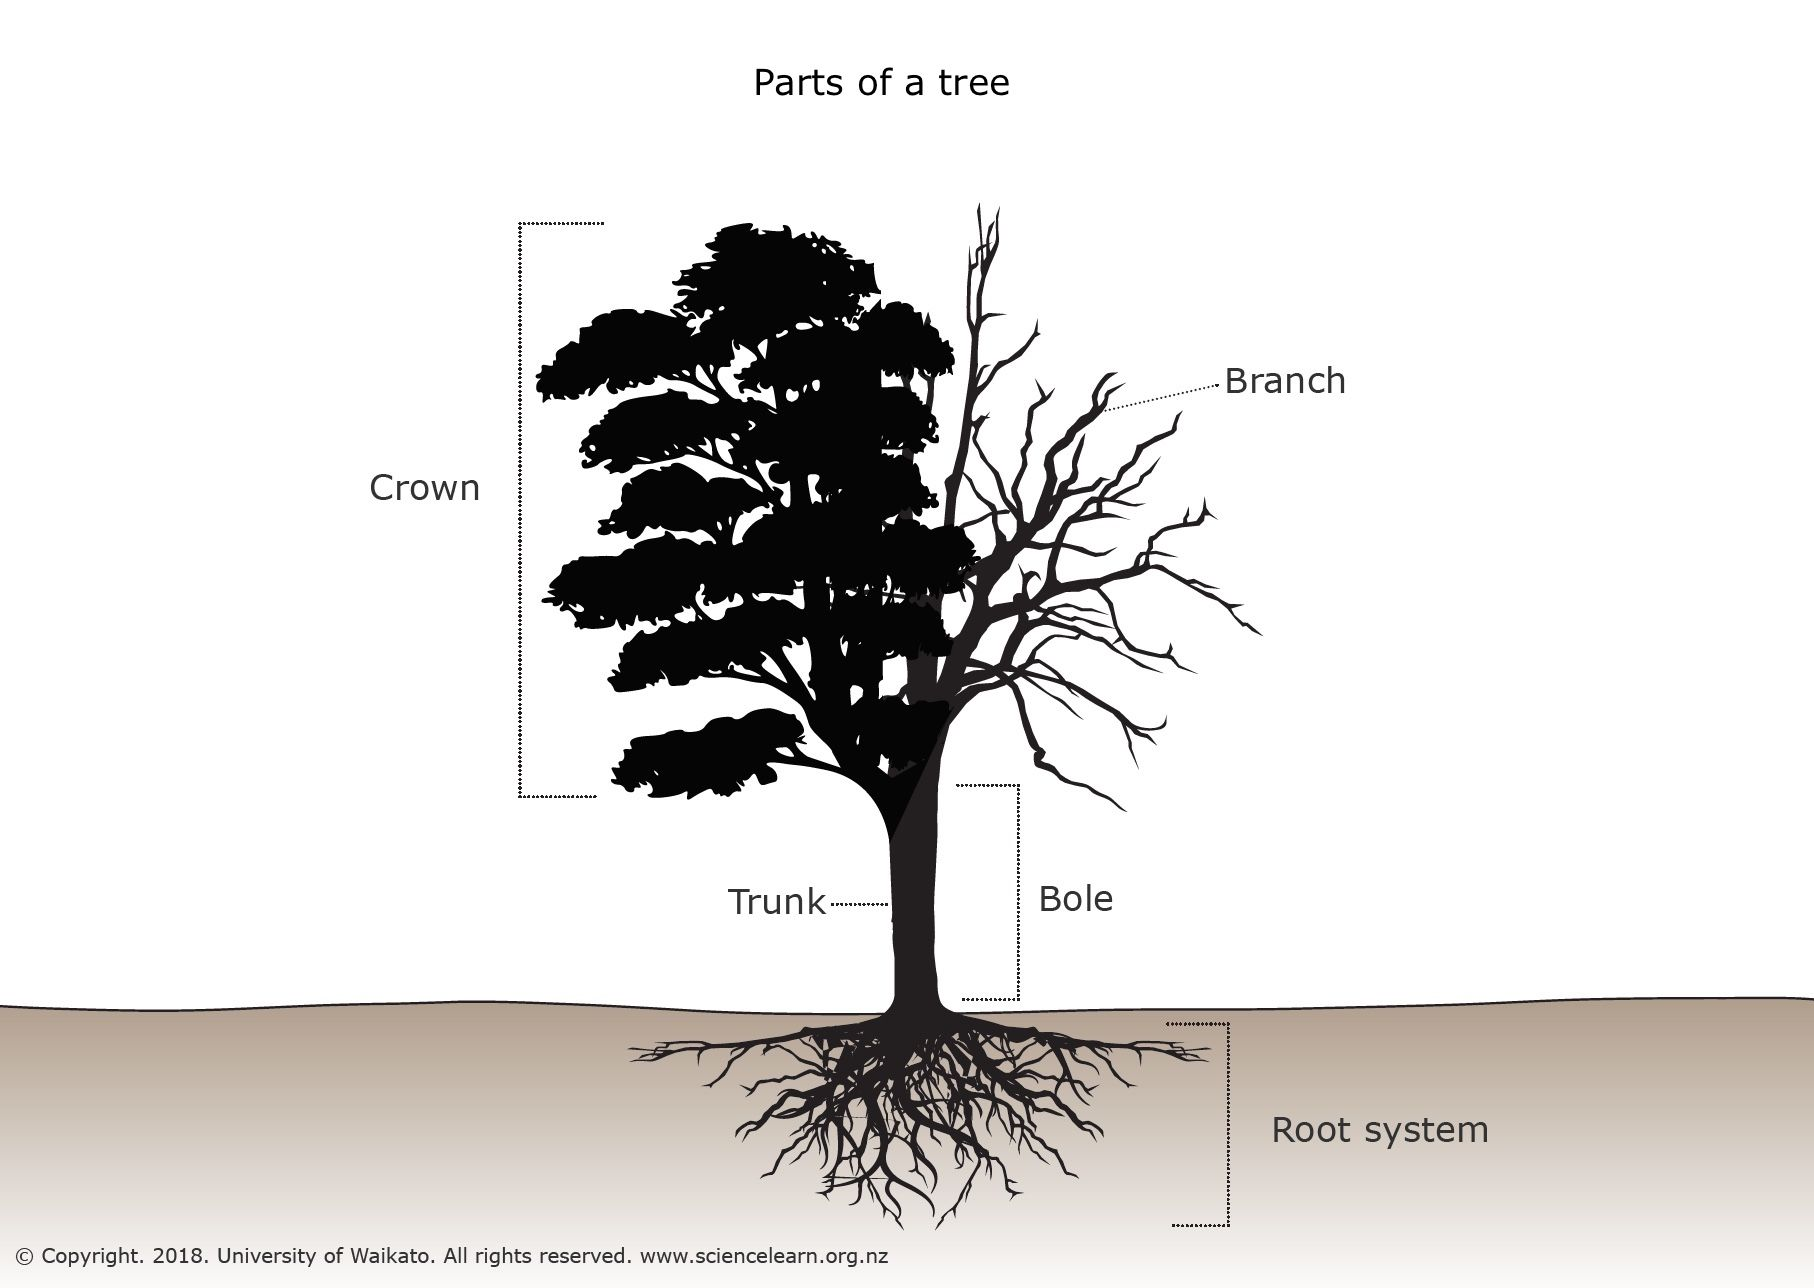 medium resolution of parts of a tree diagram this diagram labels the main parts of a tree the particular shapes and sizes of the parts may be in different proportions in